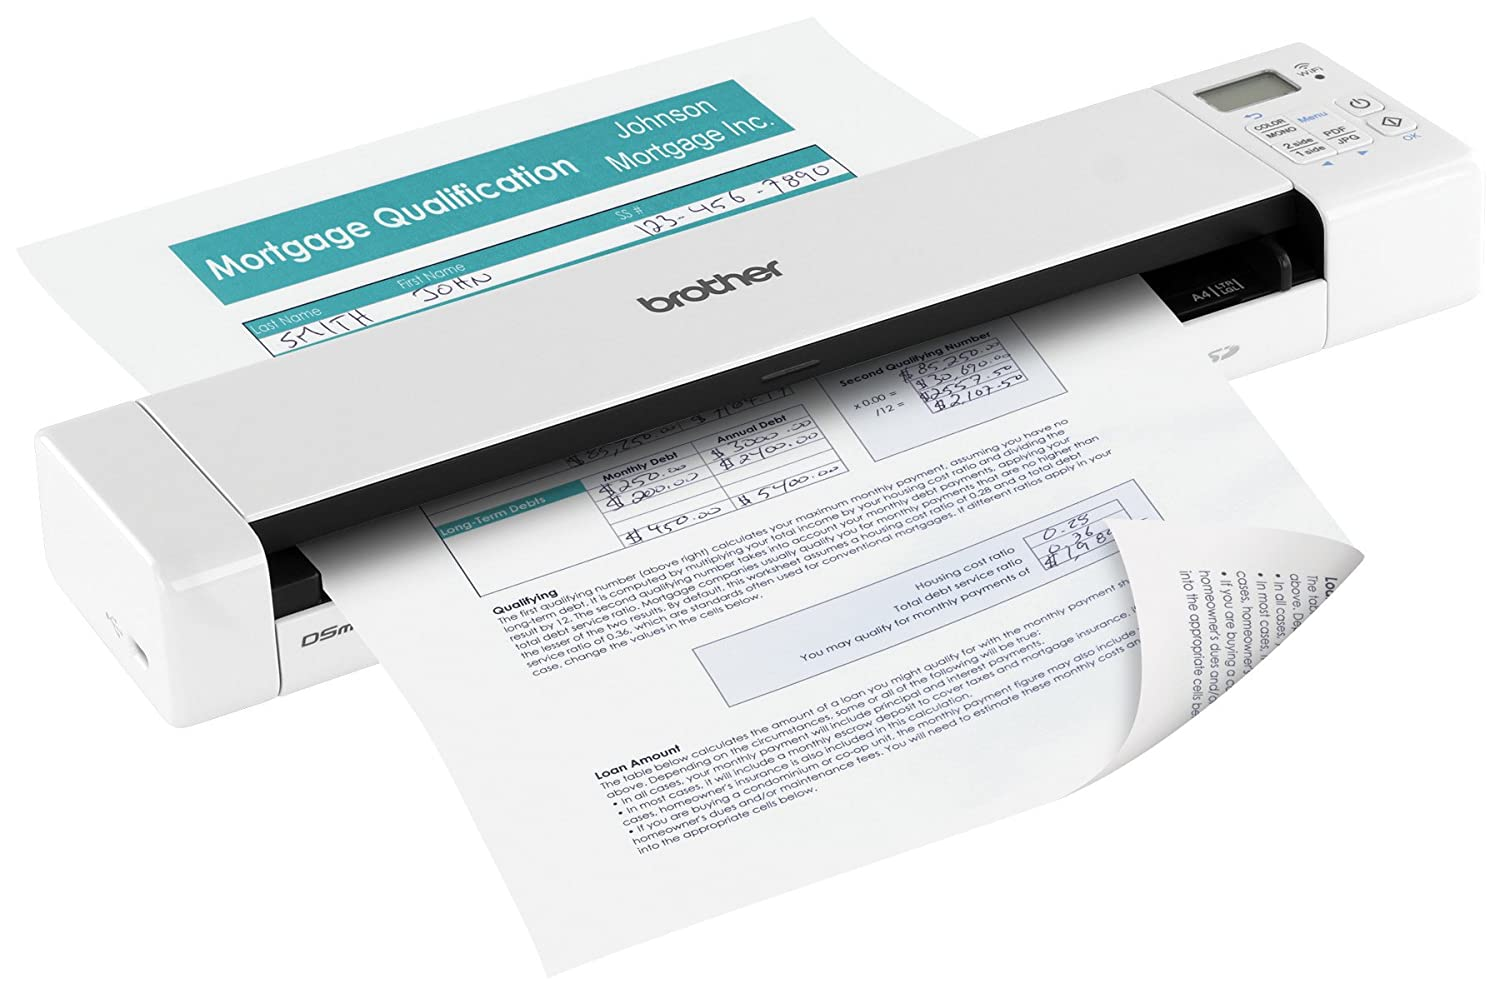 Invoice Print Out Word Amazoncom Brother Dsdw Wireless Duplex Mobile Color Page  Jetblue Receipt with Free Microsoft Invoice Template Word Amazoncom Brother Dsdw Wireless Duplex Mobile Color Page Scanner  Electronics Home Depot Duplicate Receipt Excel